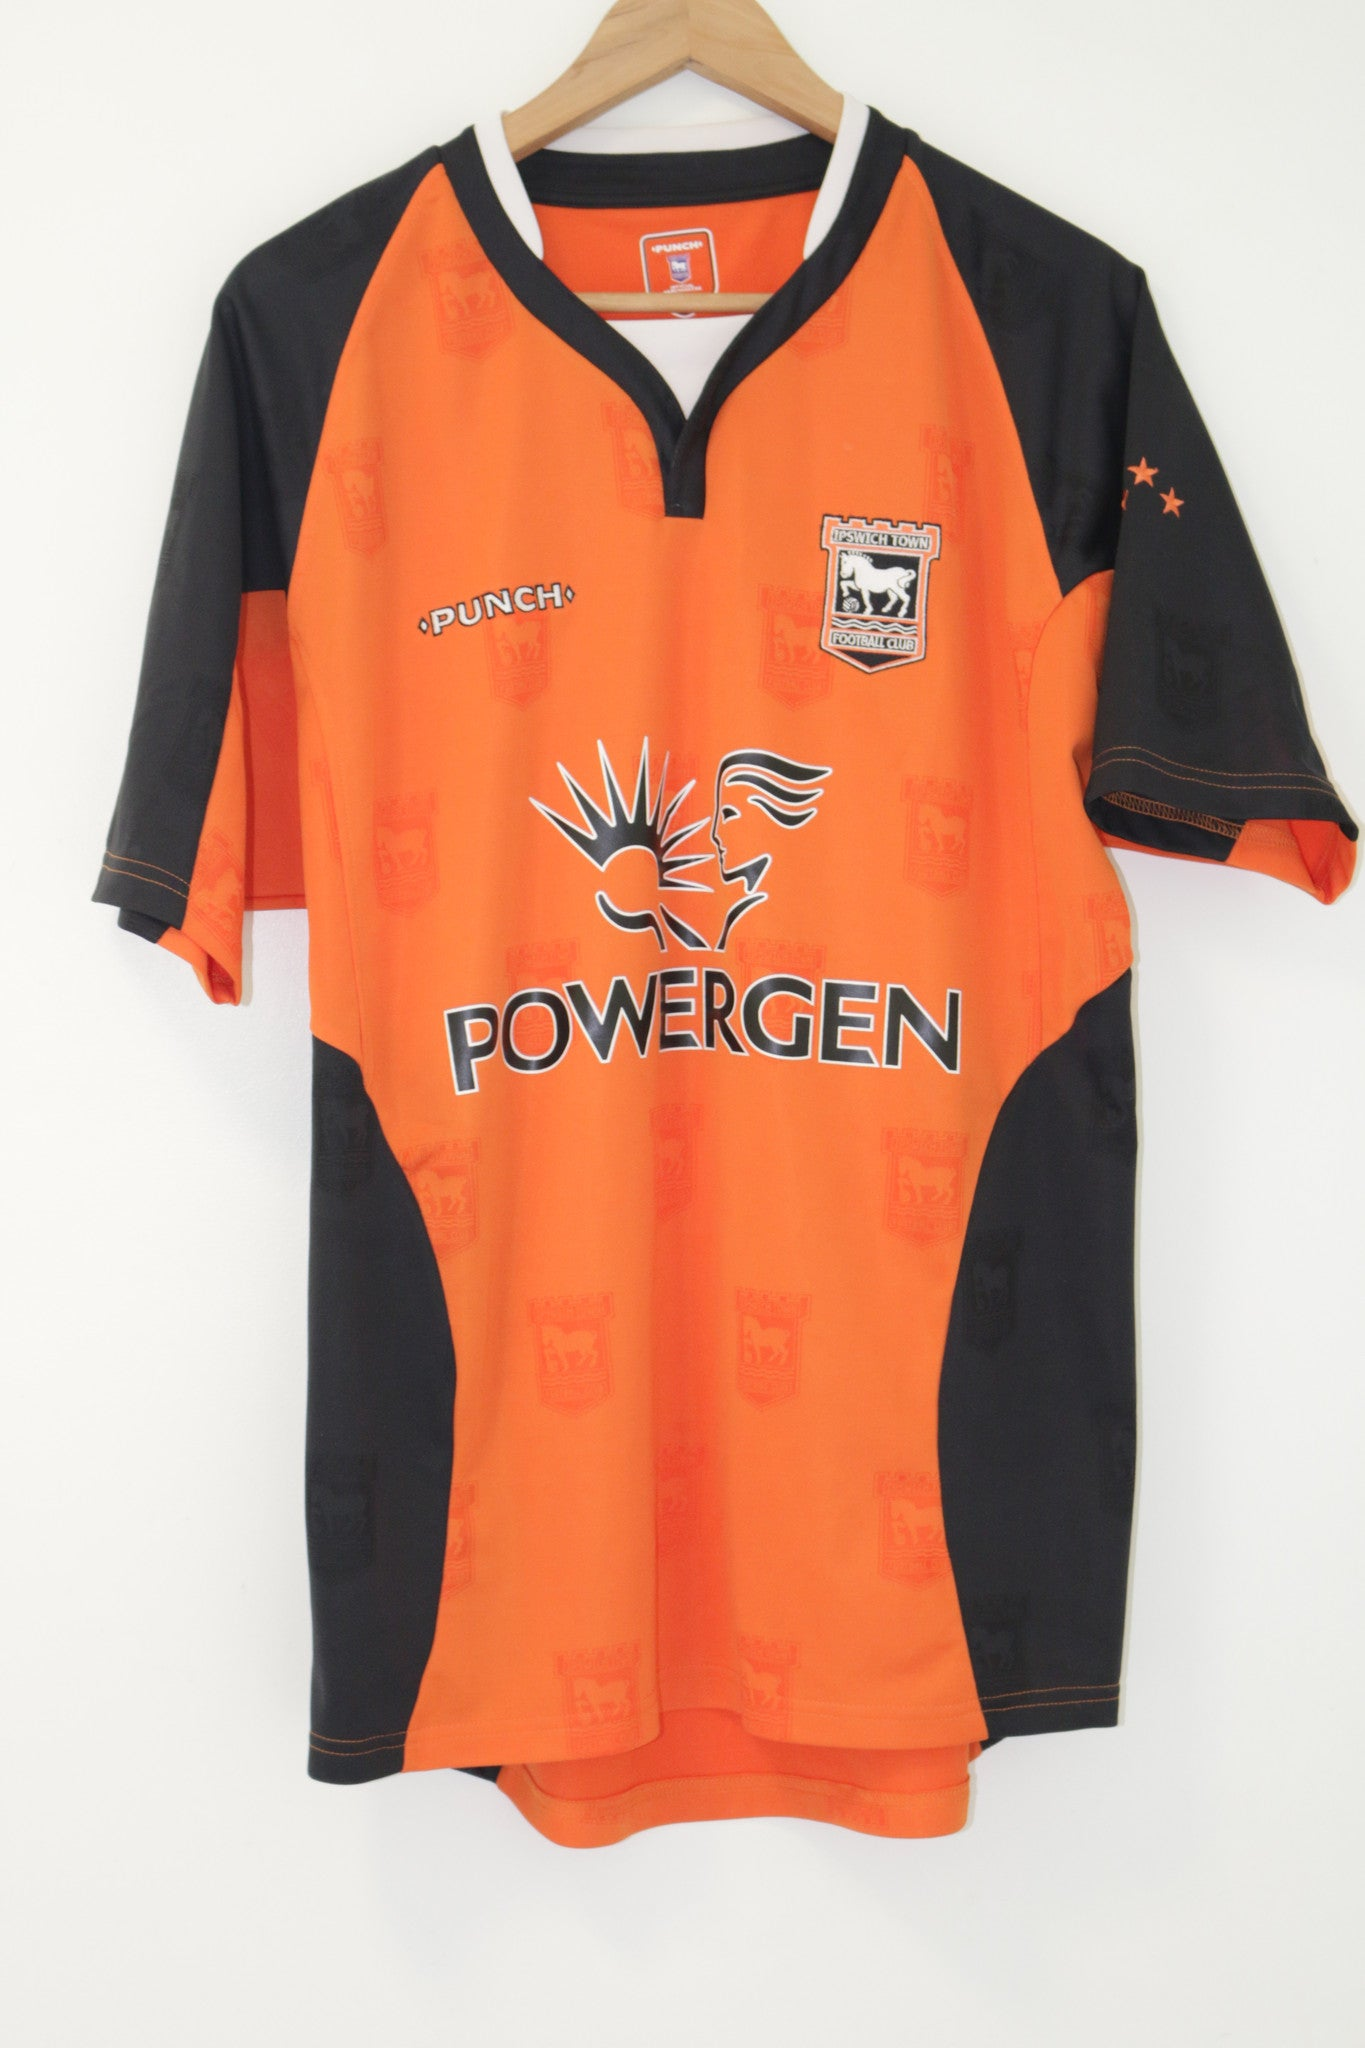 Ipswich 2005-2006 Punch Away Shirt Large